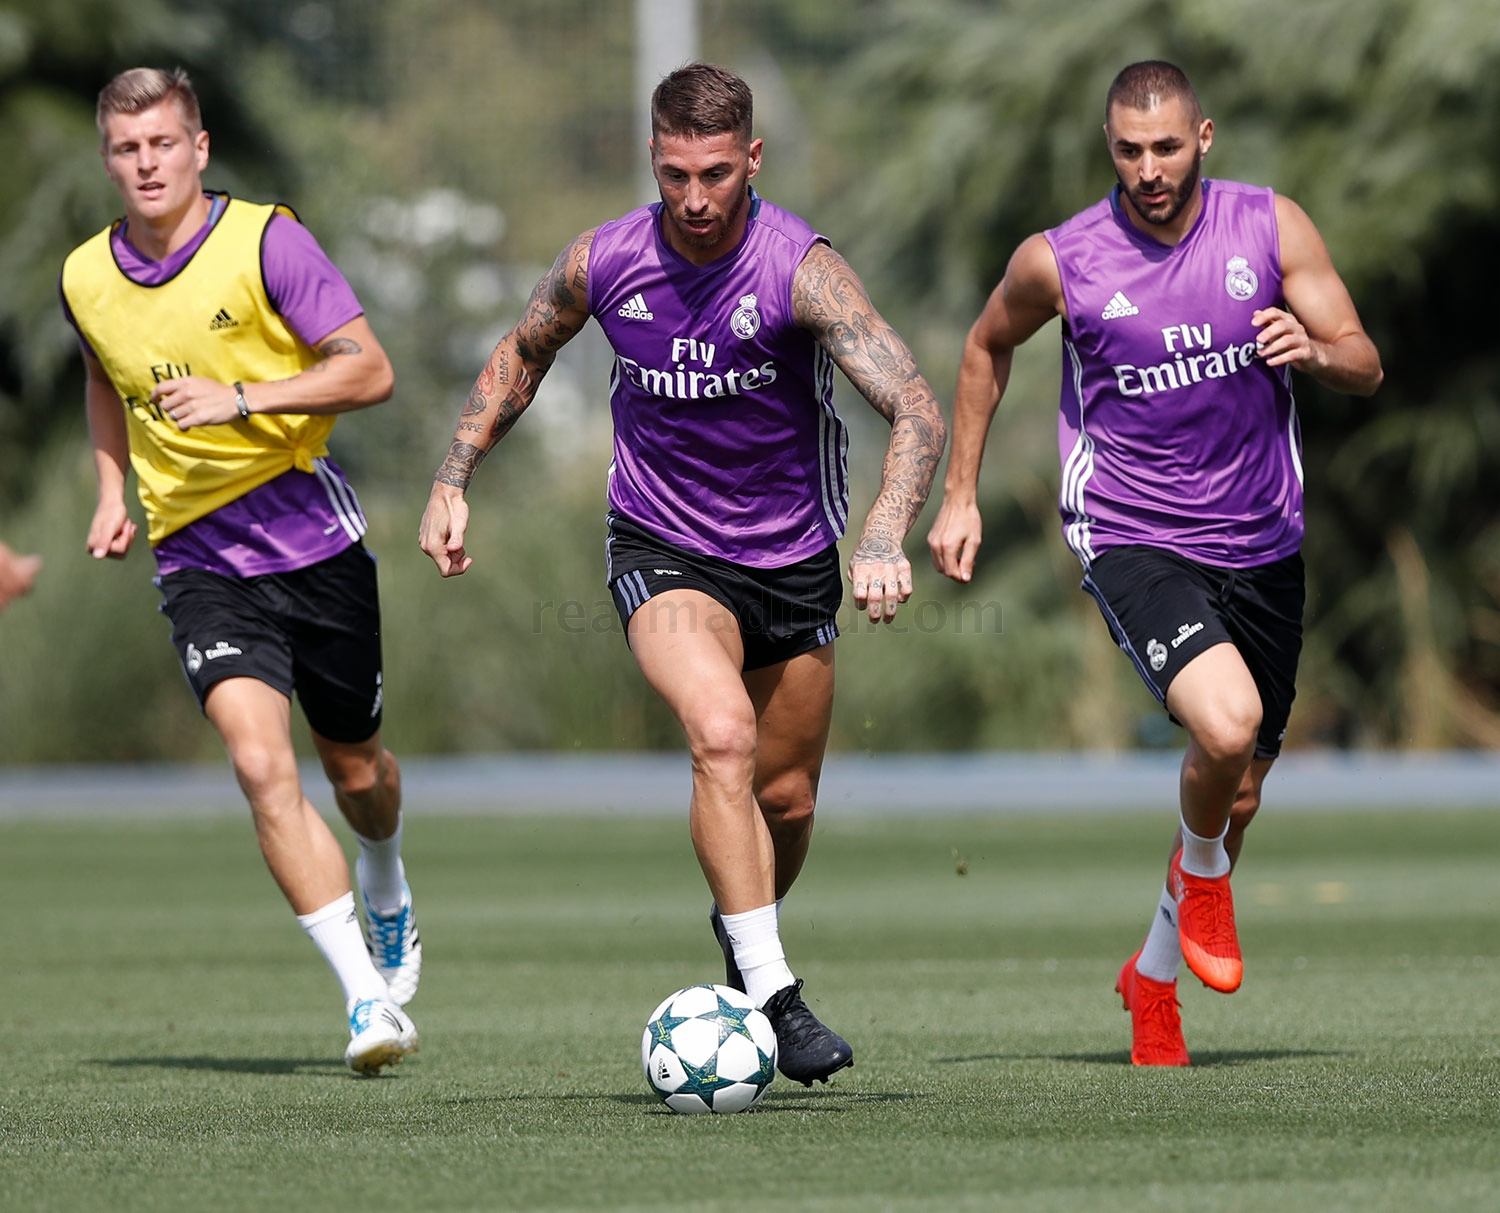 Real Madrid - Entrenamiento del Real Madrid - 12-09-2016